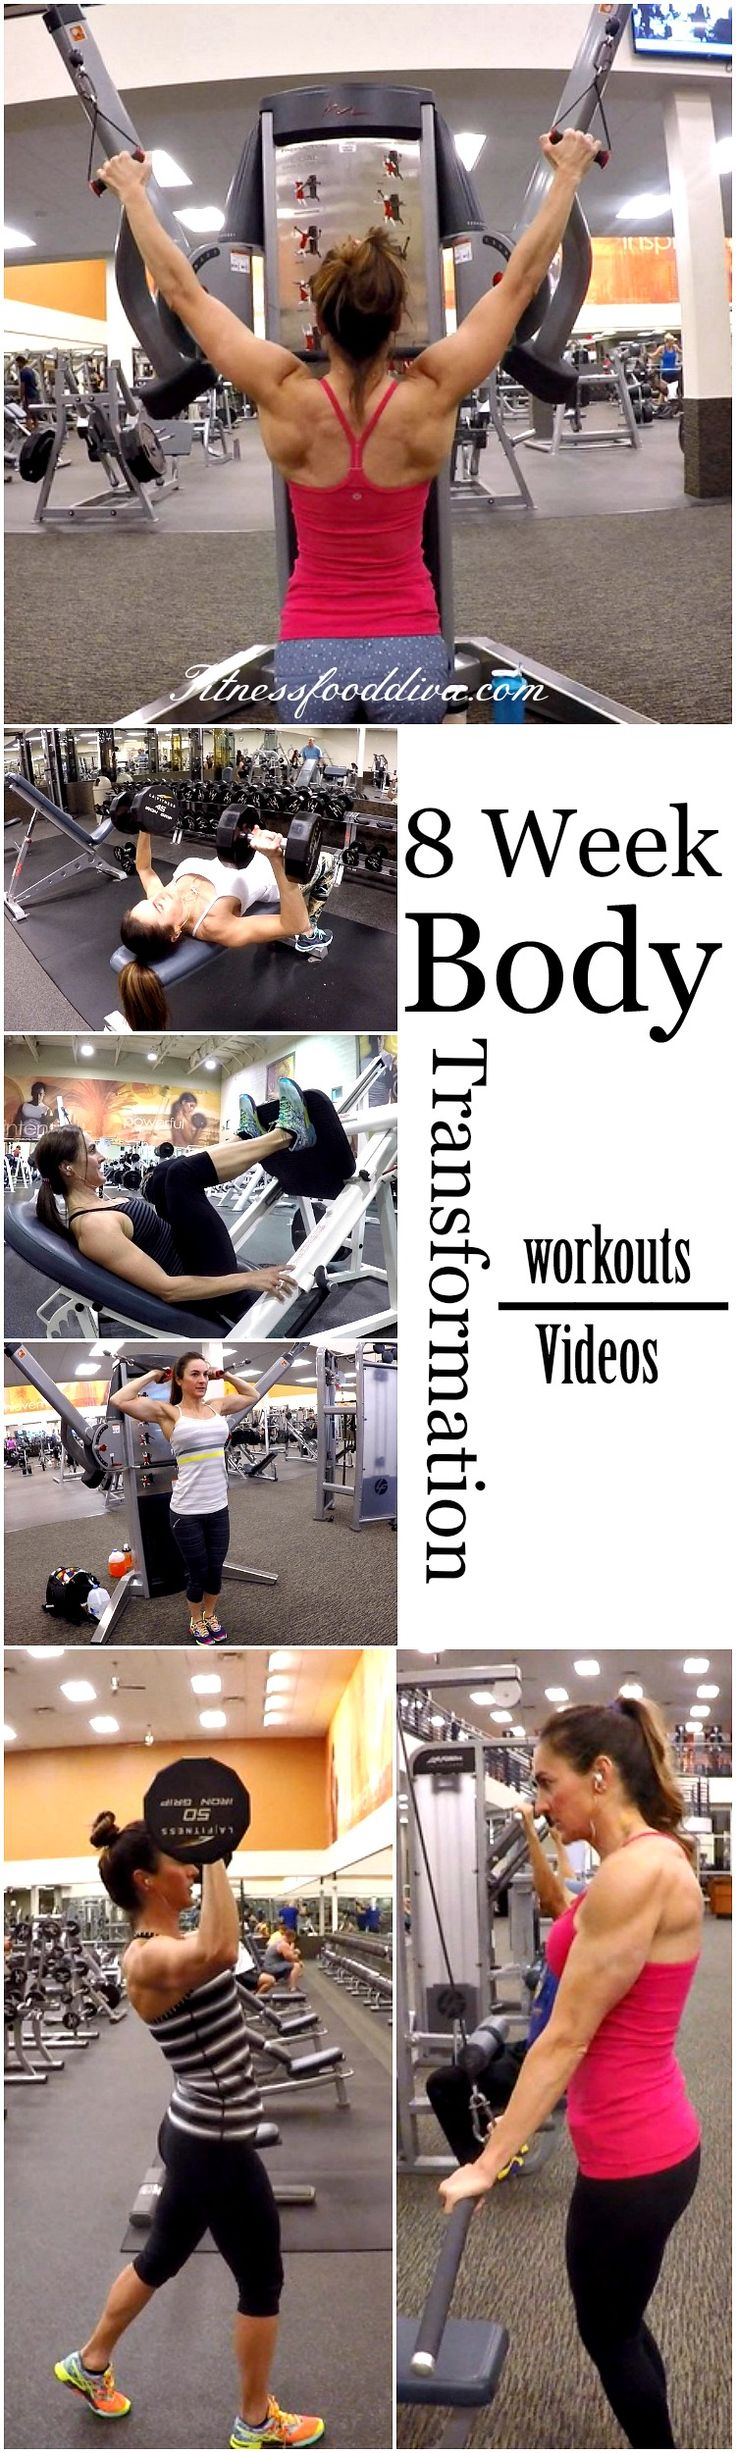 8 Week Body Transformation is now at your finger tips. All the days and workouts are available and I hope you will love it as much as I did!   Daily Calendar Day 1: Legs Day 2: Chest and Triceps Day 3: Active Rest: Leave the weights alone, and get in cardio only. Day...Read More »